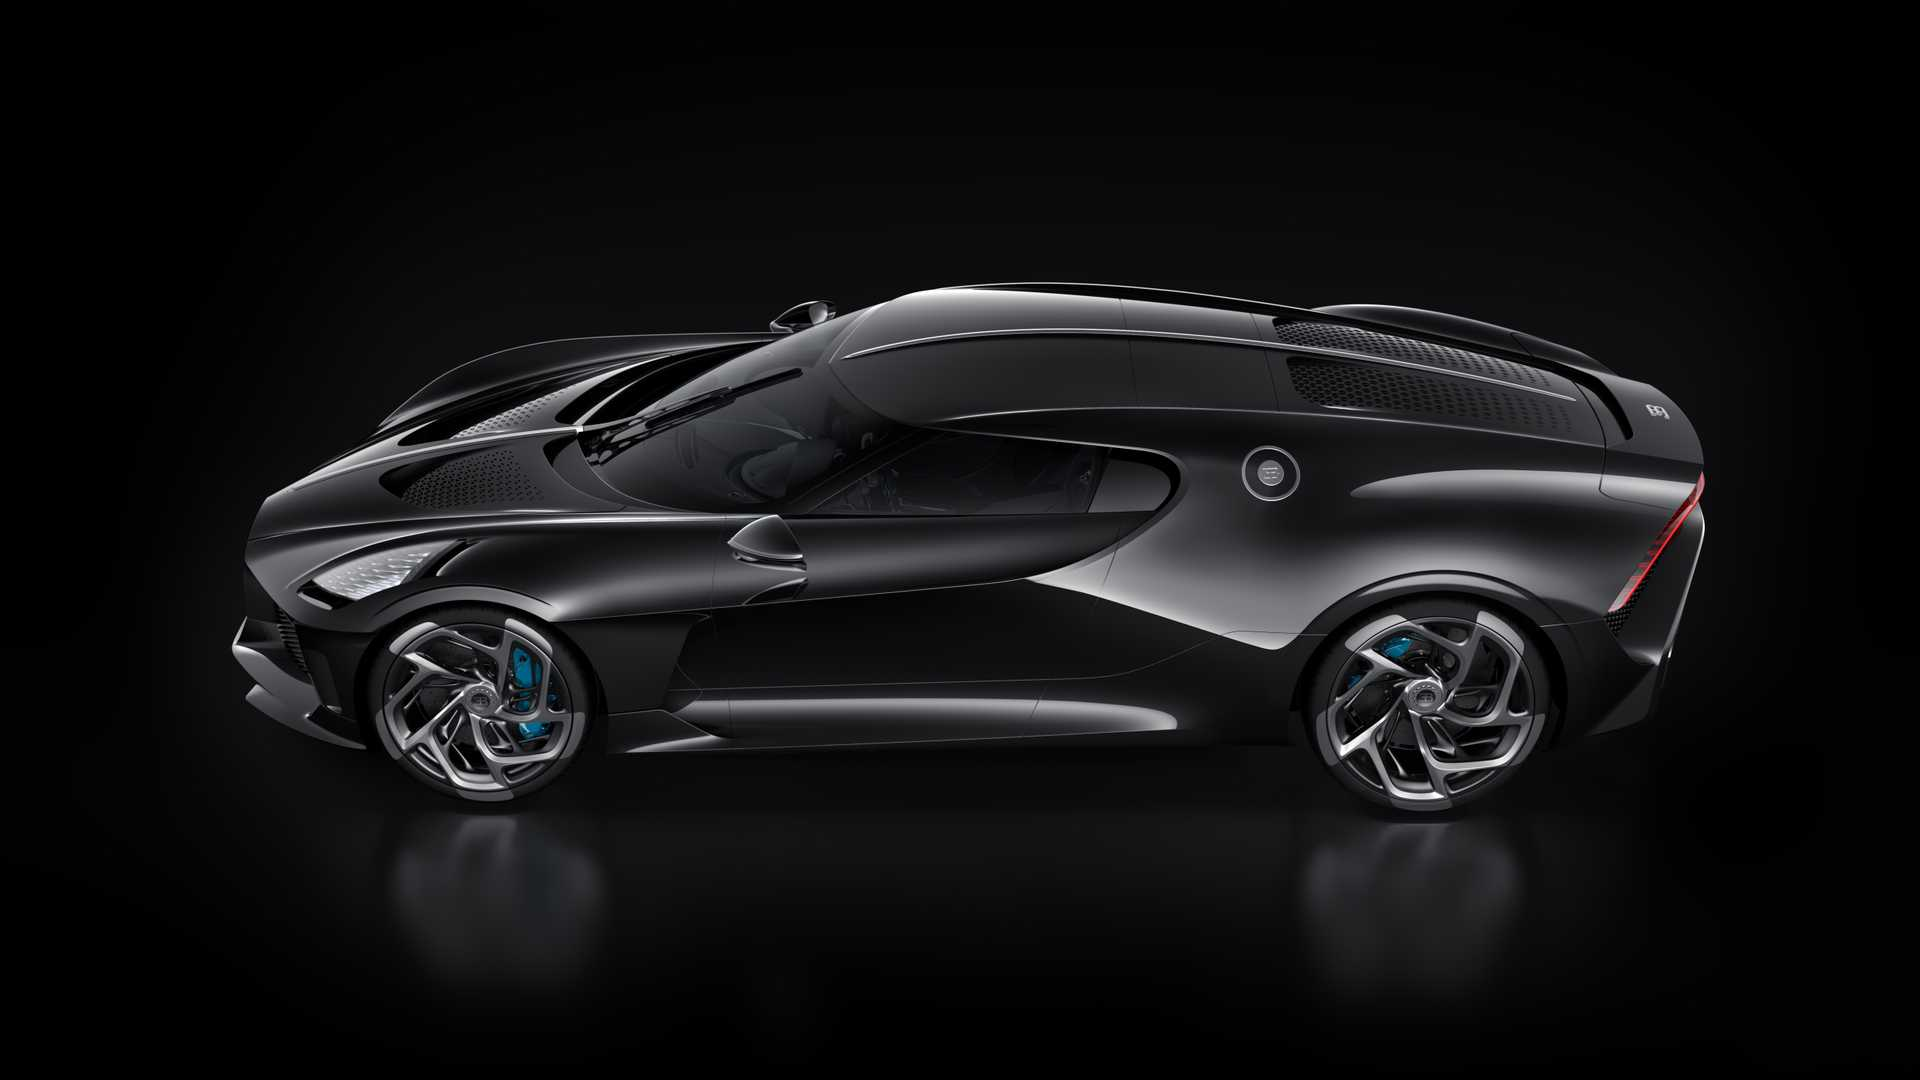 2019 Bugatti La Voiture Noire Top Wallpapers (5)